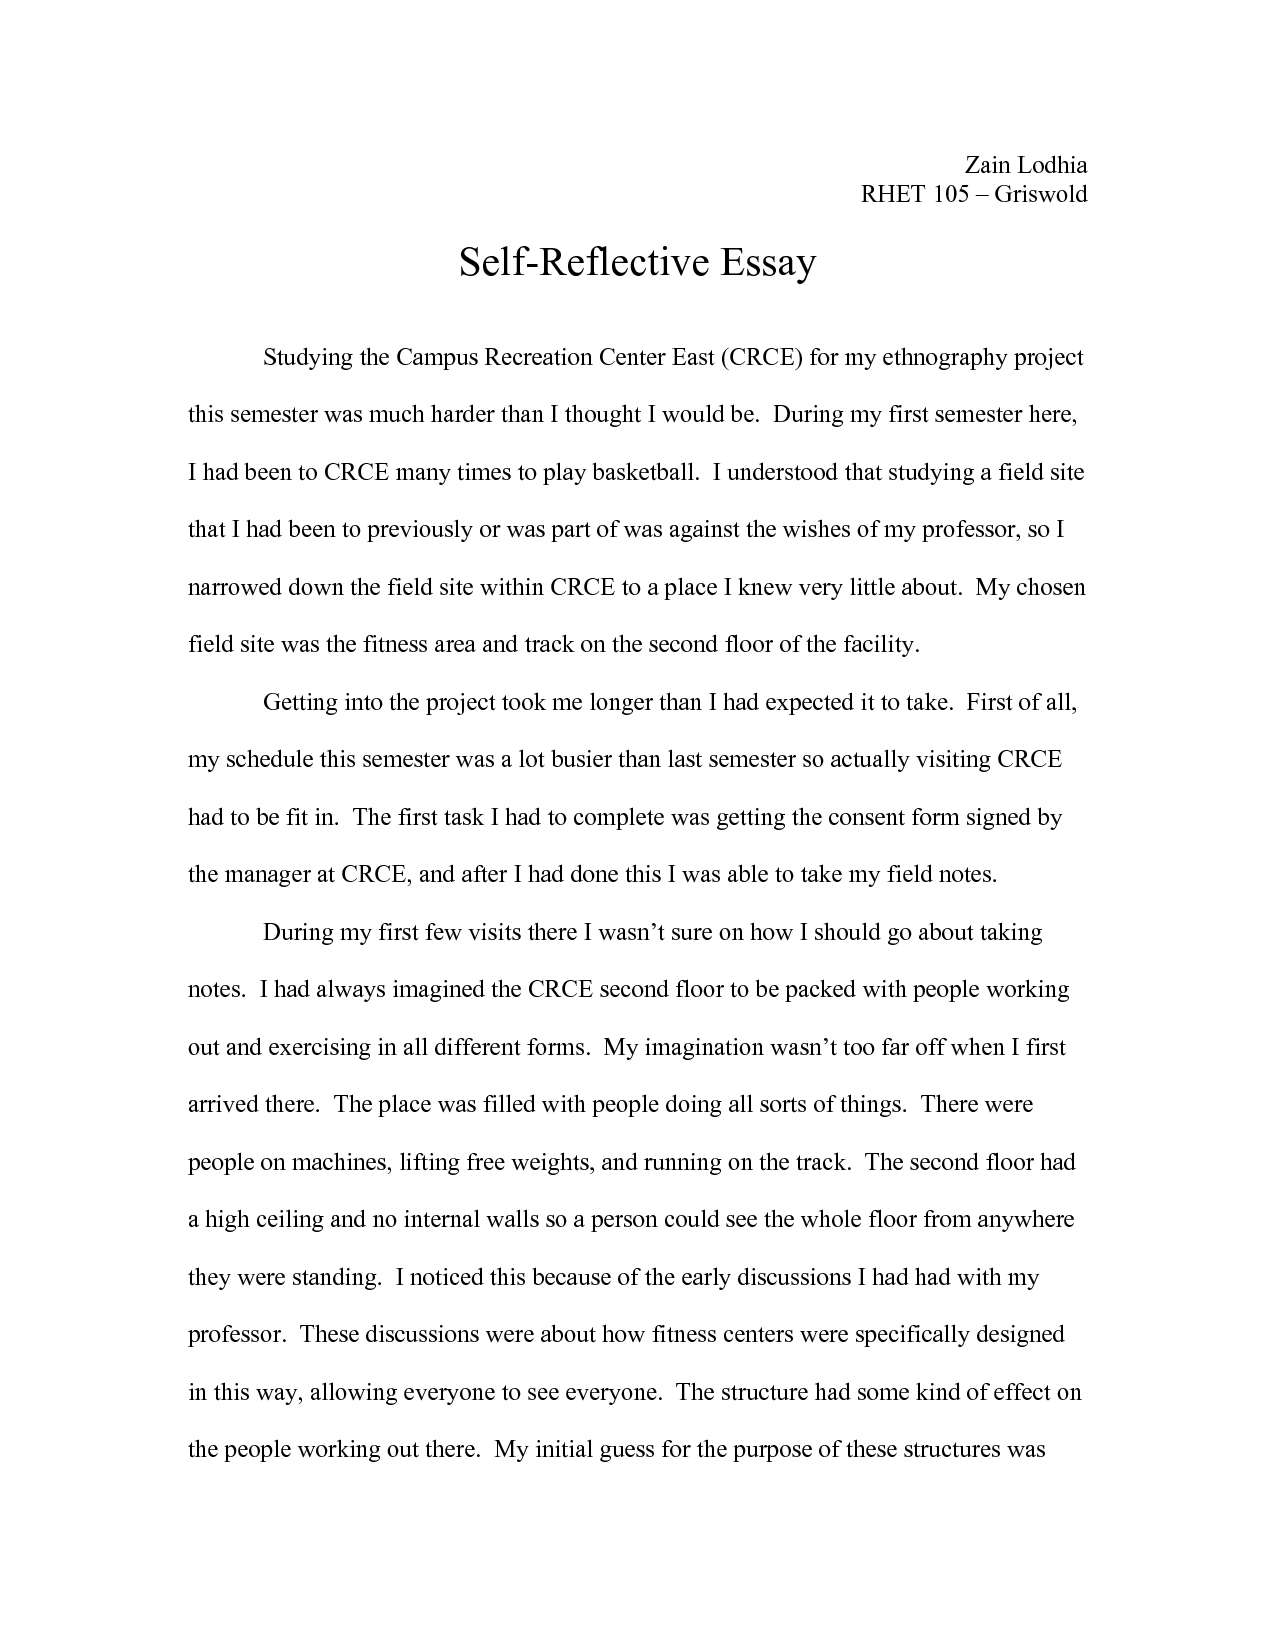 028 How To Write And Essay Qal0pwnf46 Unique An Outline 6th Grade Conclusion In Mla Format Full